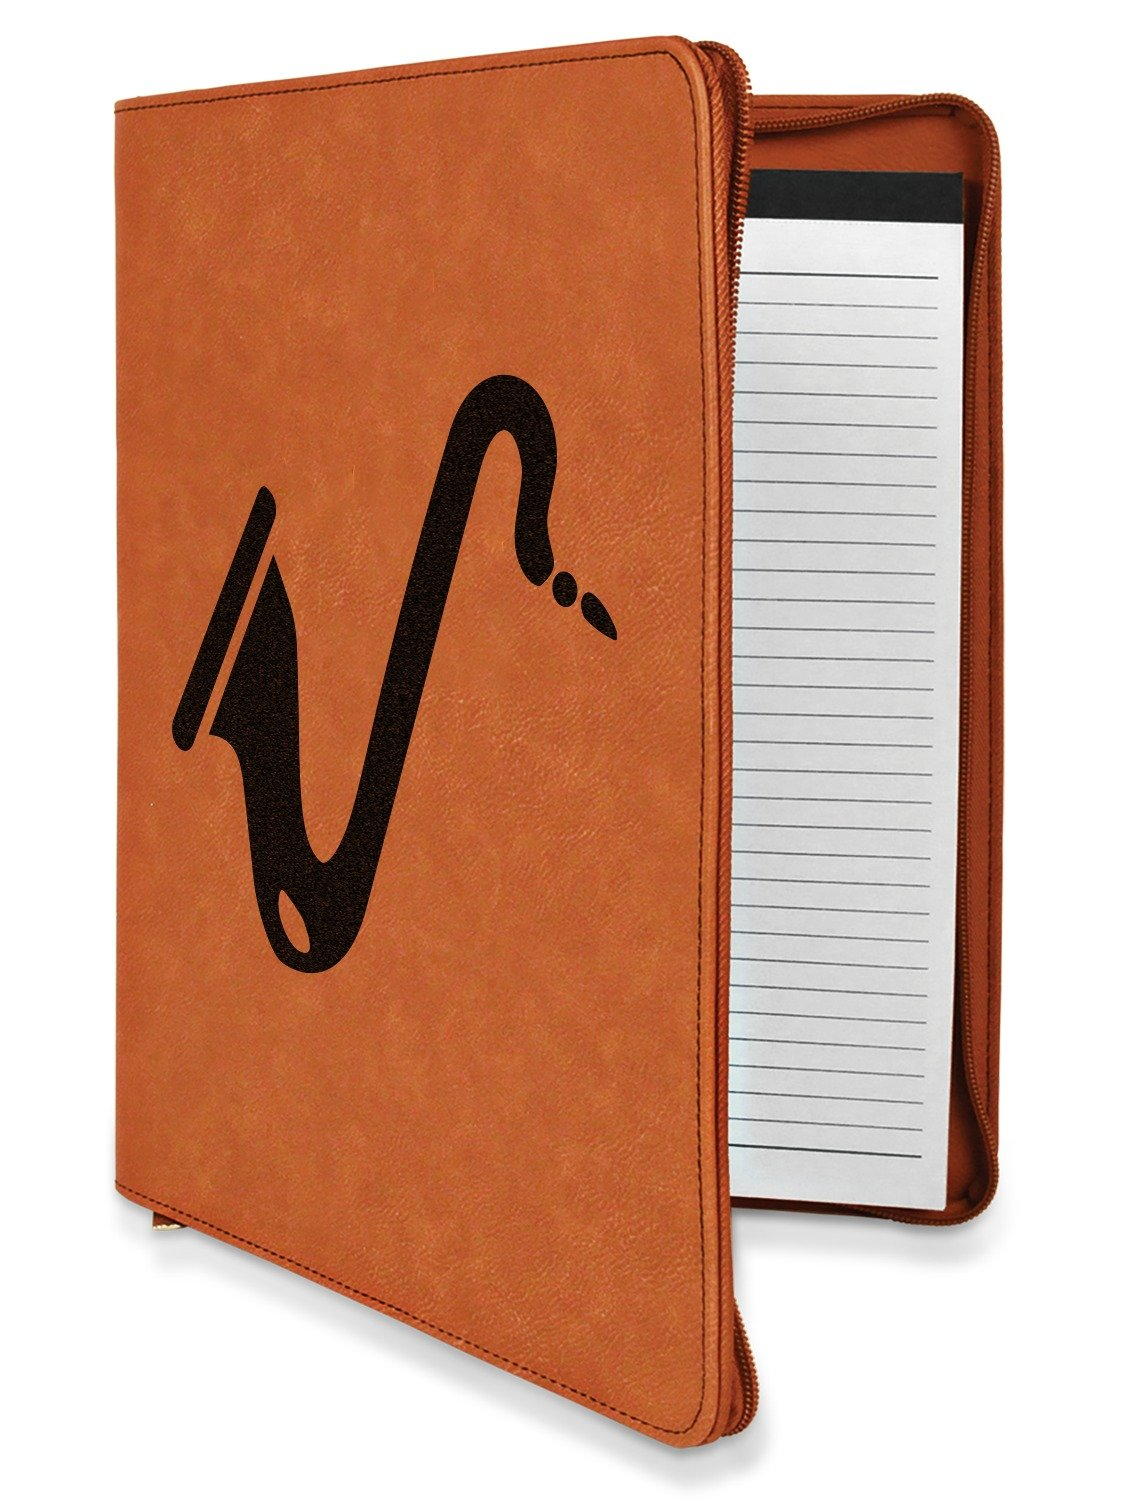 Musical Instruments Leatherette Zipper Portfolio with Notepad - Single Sided (Personalized)